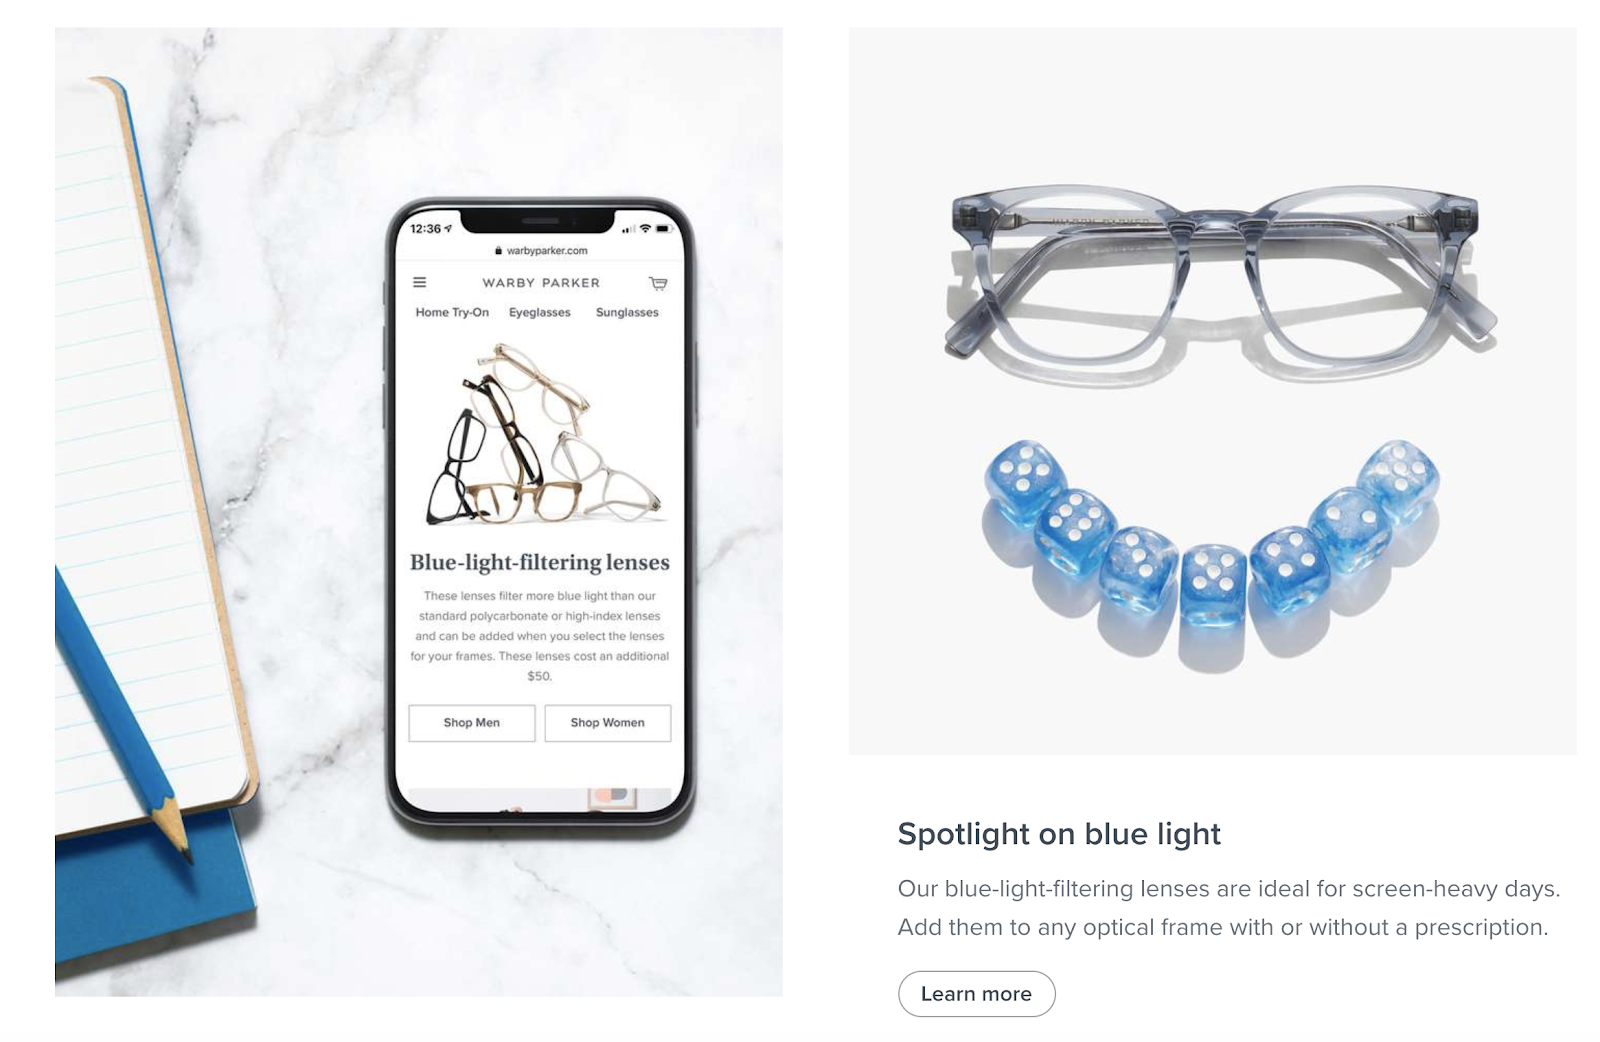 Product Categorization Examples on Warby Parker